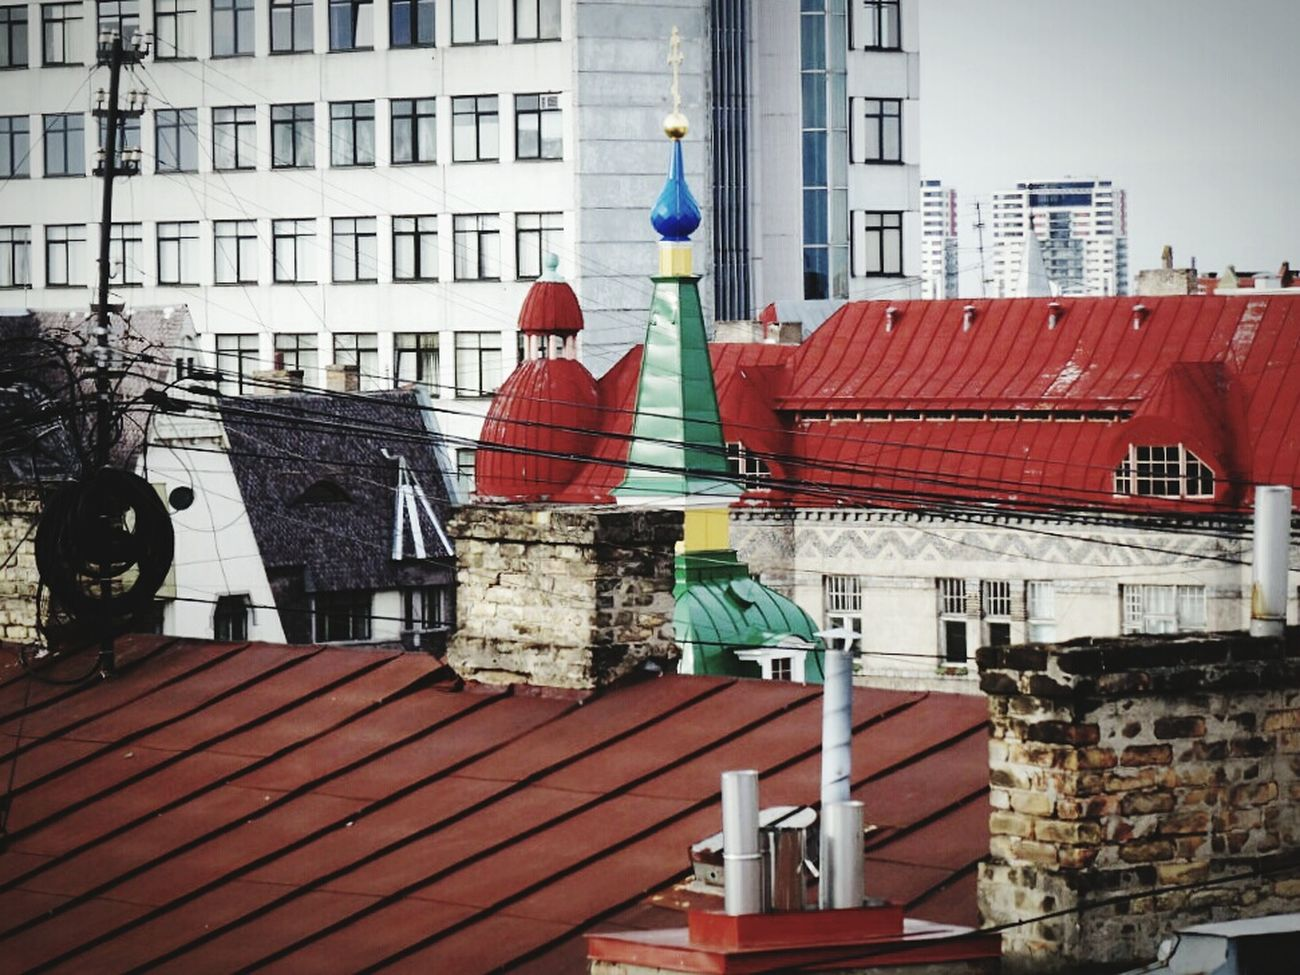 Riga Latvia Riga Roofs Over The Roofs Colors Architecture Cityscape Old Buildings Check This Out